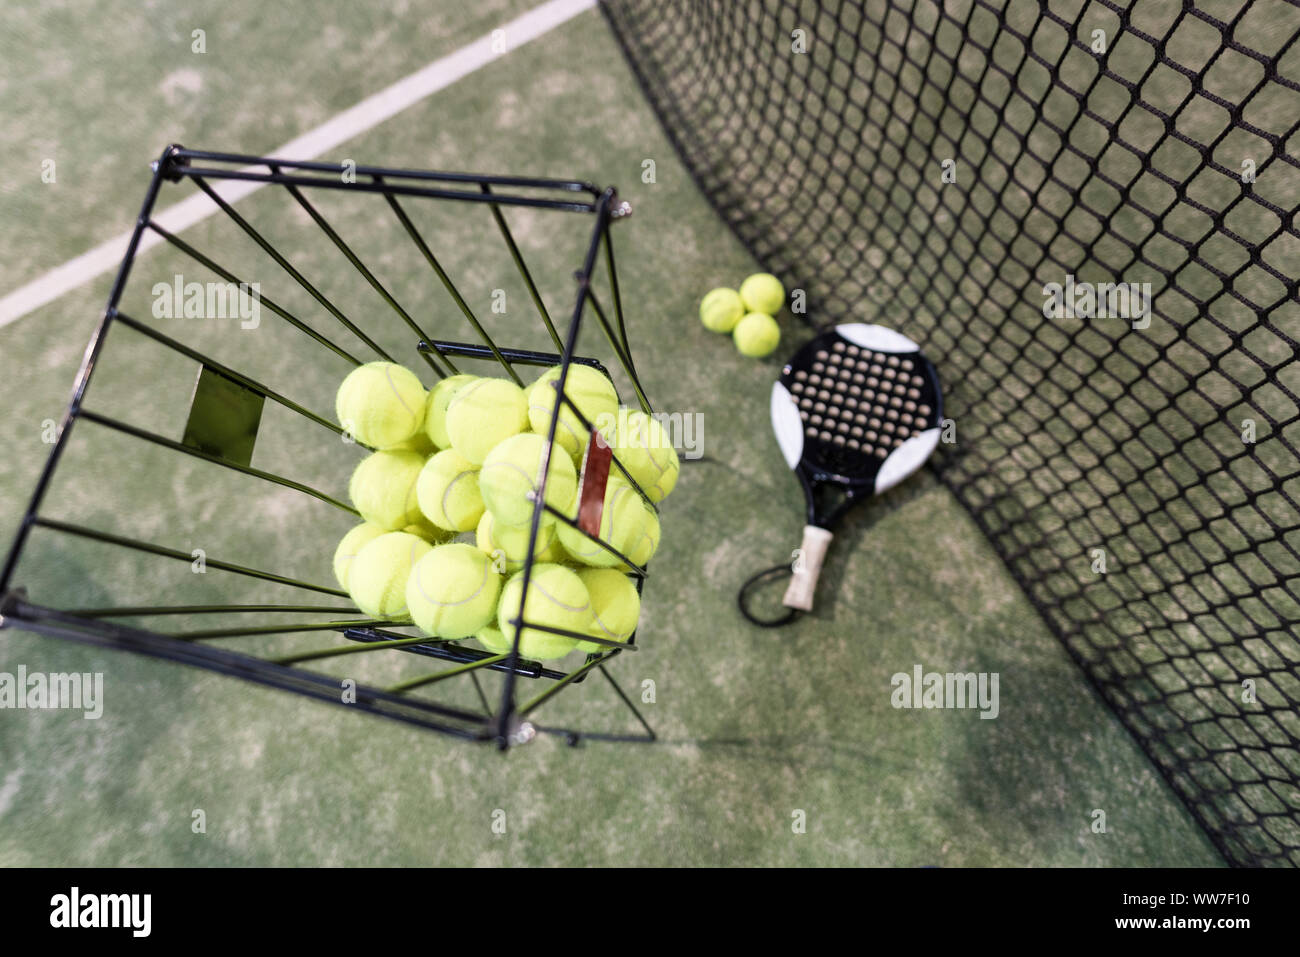 Paddle tennis objects on turf, balls, racket, net…focus on basket balls, Stock Photo